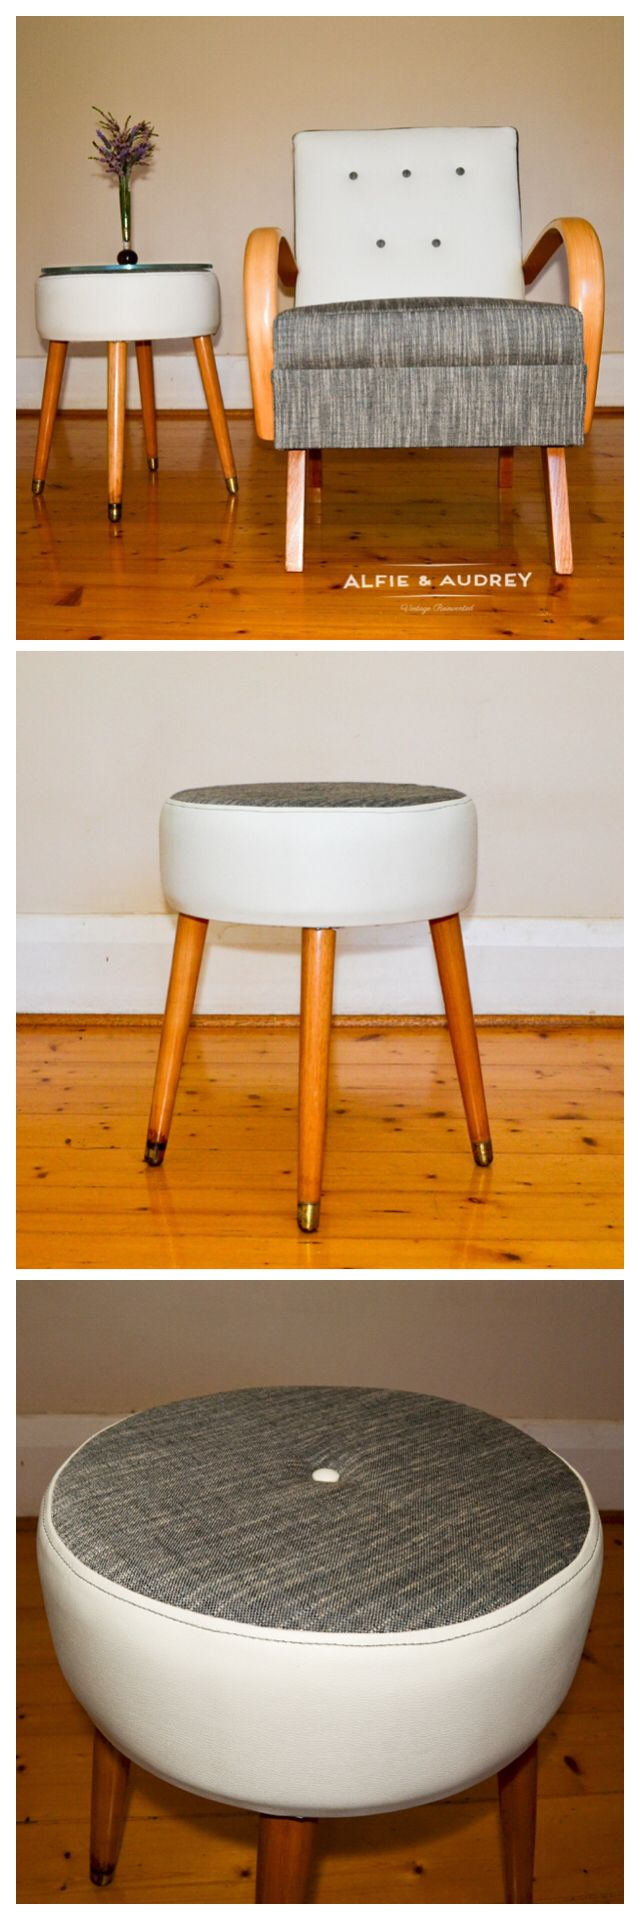 Cosette side table online now @ www.alfieandaudrey.com.au  Chair sold separately.